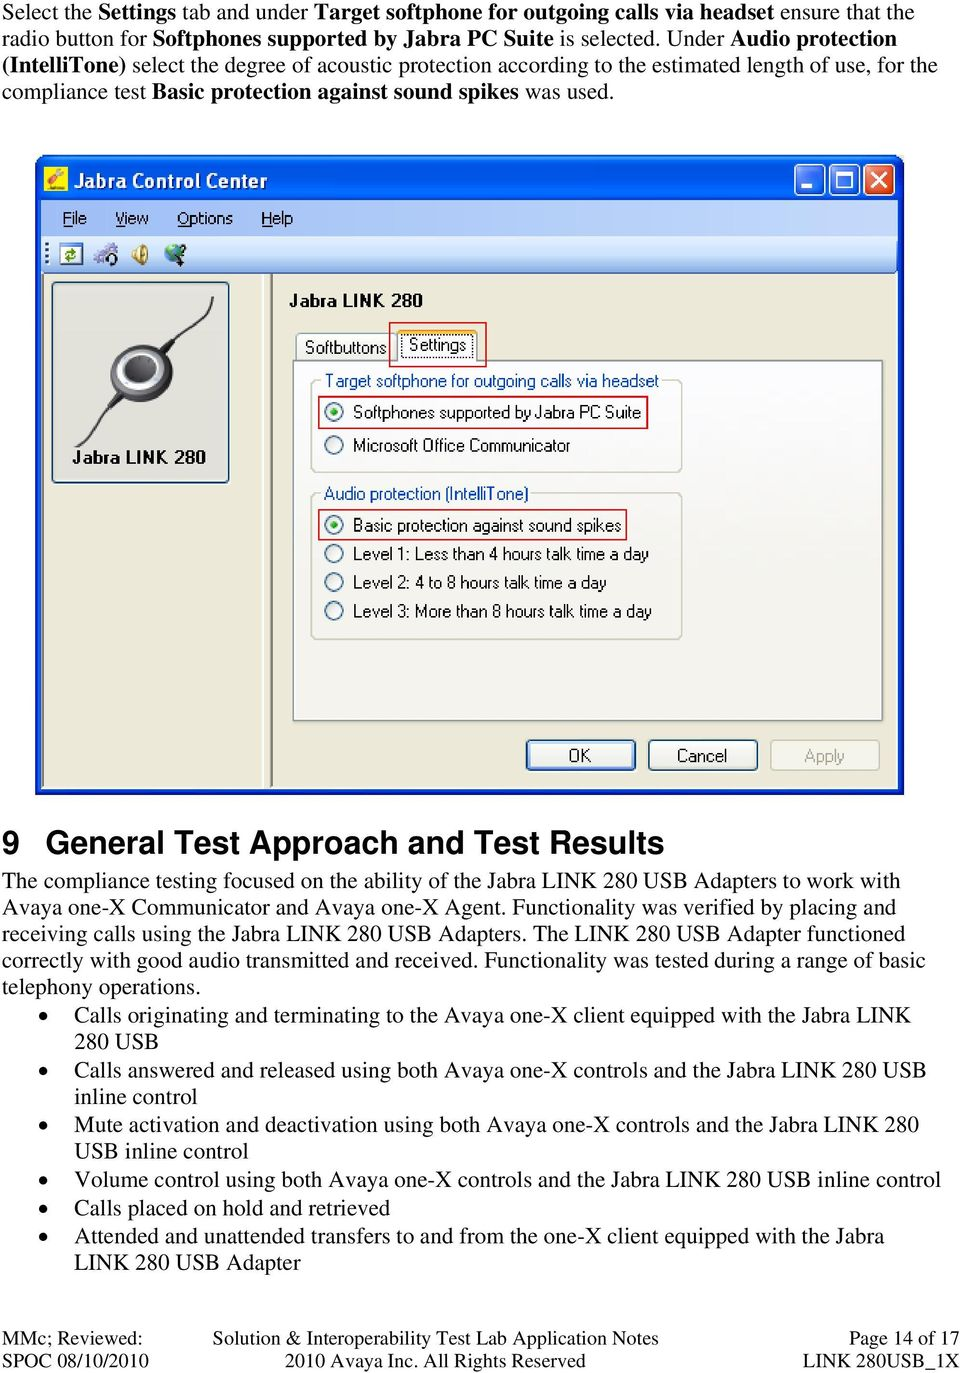 9 General Test Approach and Test Results The compliance testing focused on the ability of the Jabra LINK 280 USB Adapters to work with Avaya one-x Communicator and Avaya one-x Agent.